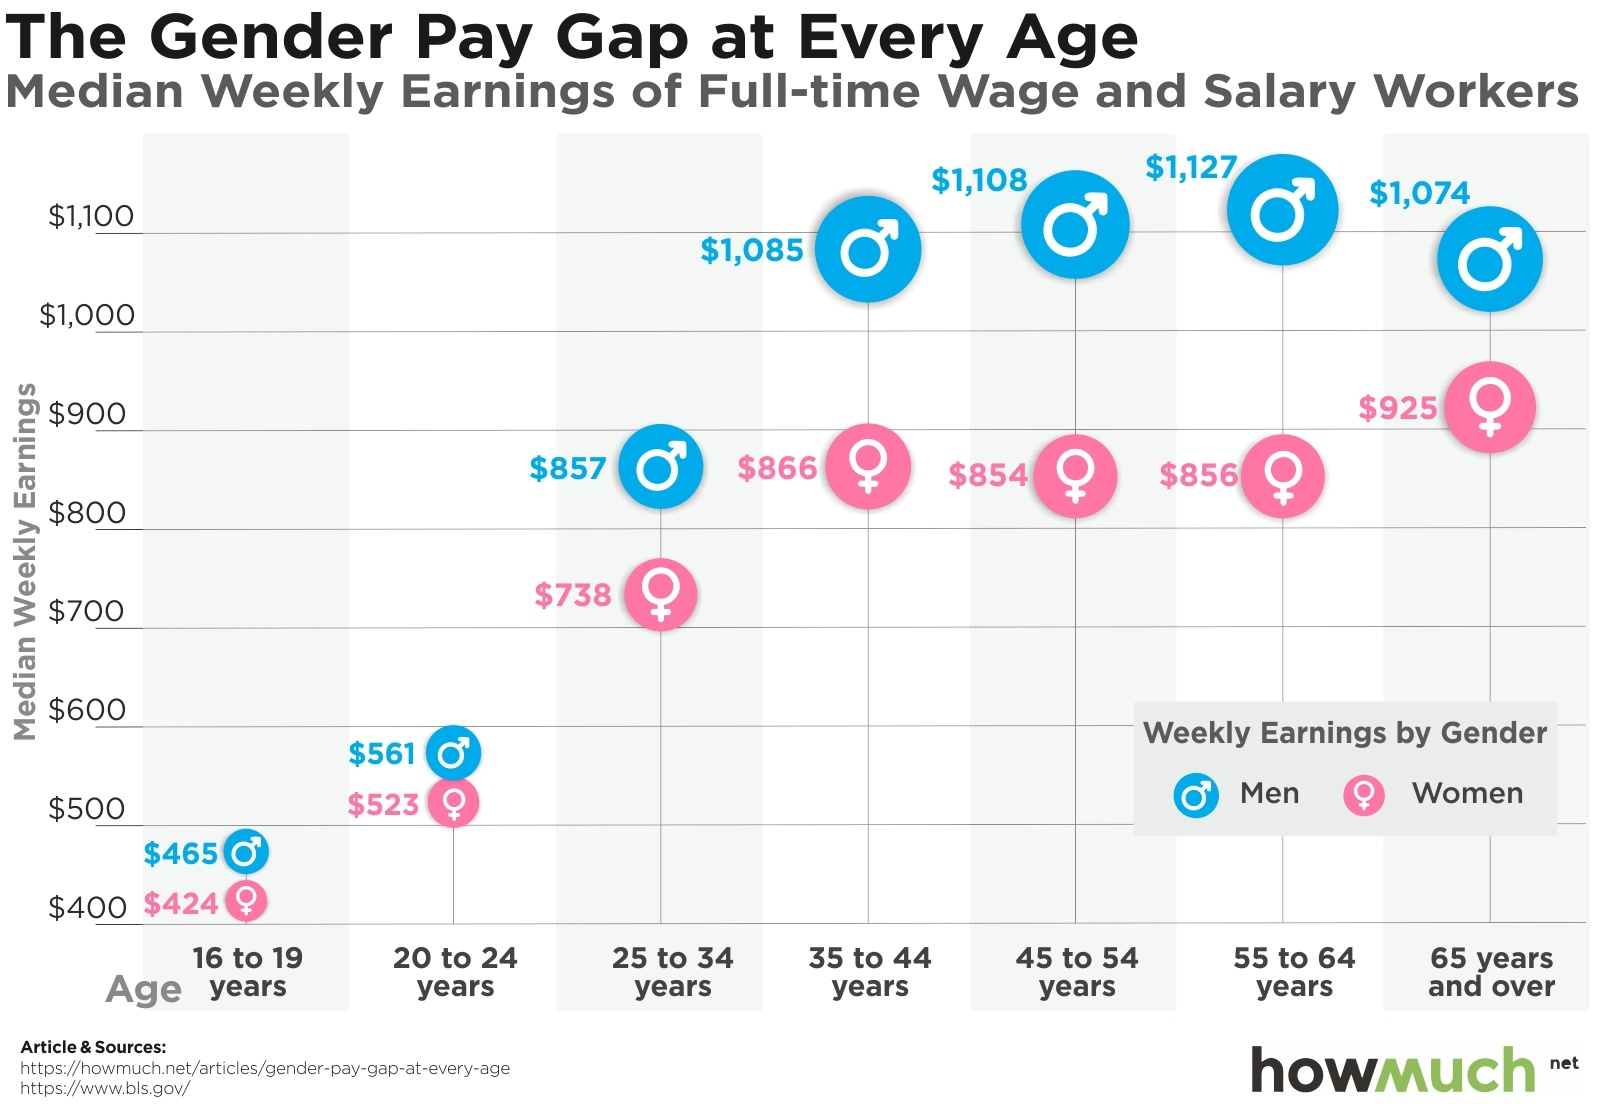 i lager för hela familjen bra priser Here's How Much More Money American Men Earn than Women at Every Age